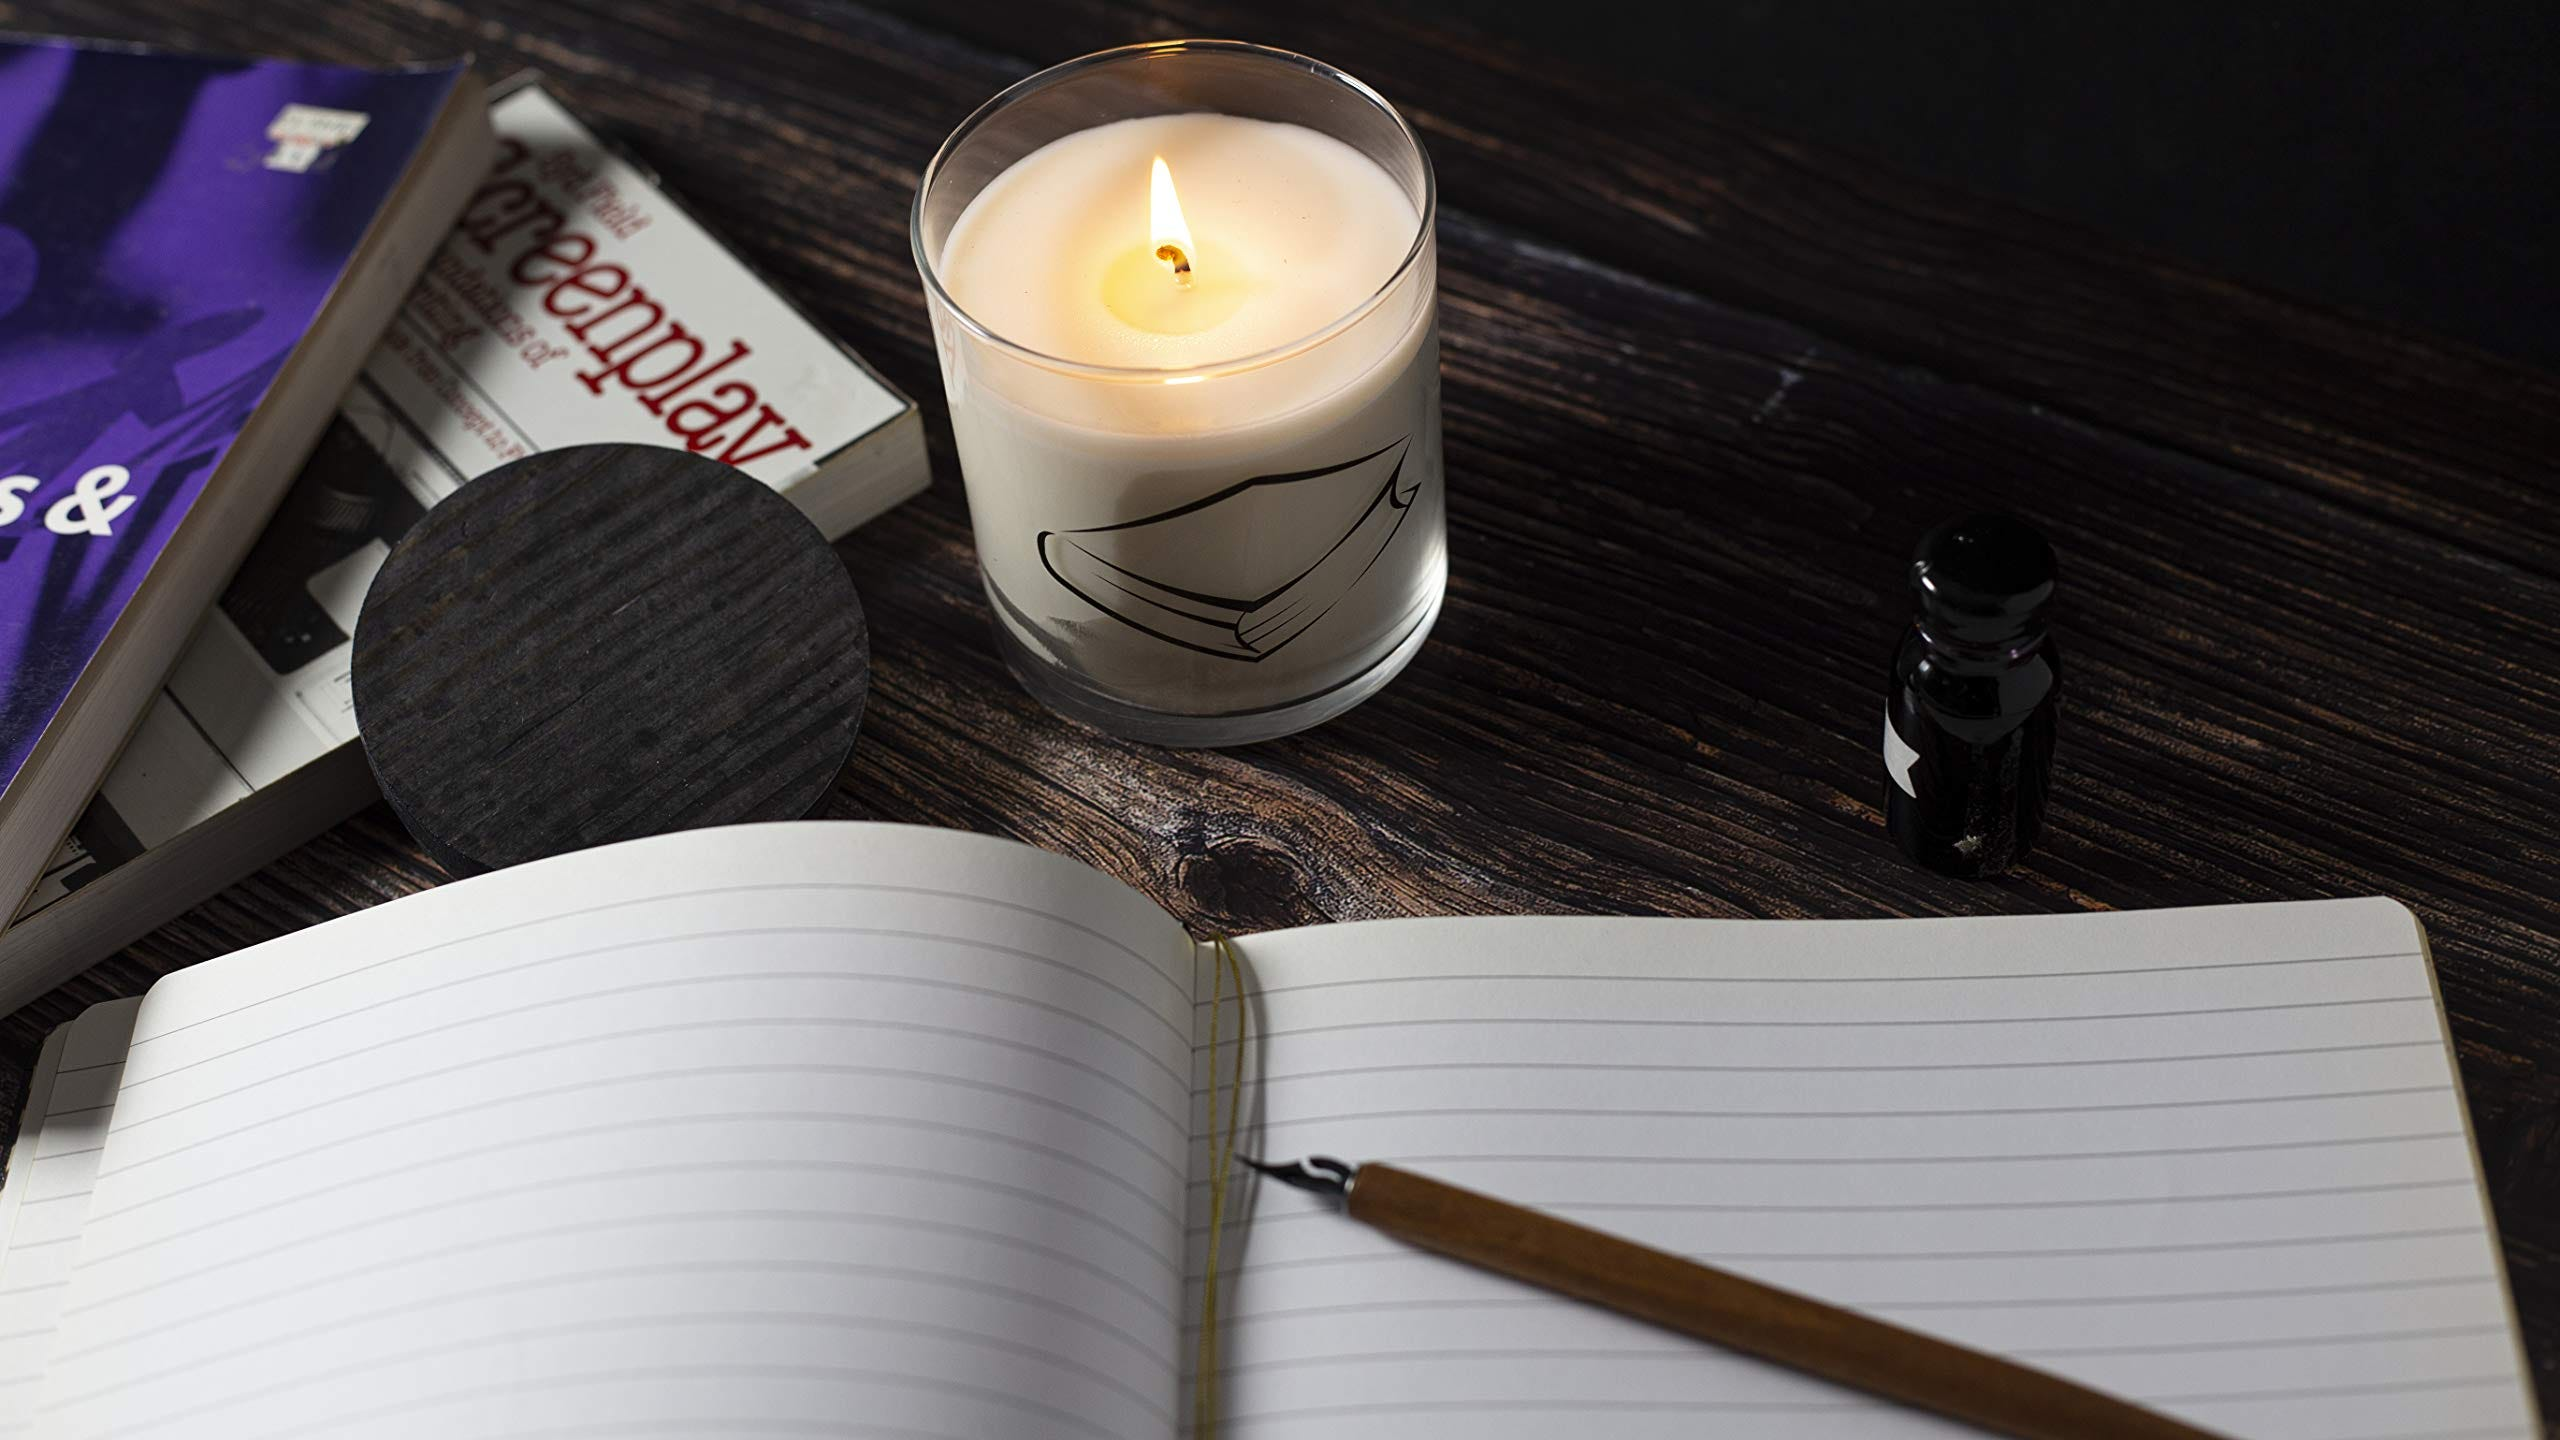 A candle burning on a table beside books, an open notebook, and a bottle of ink.